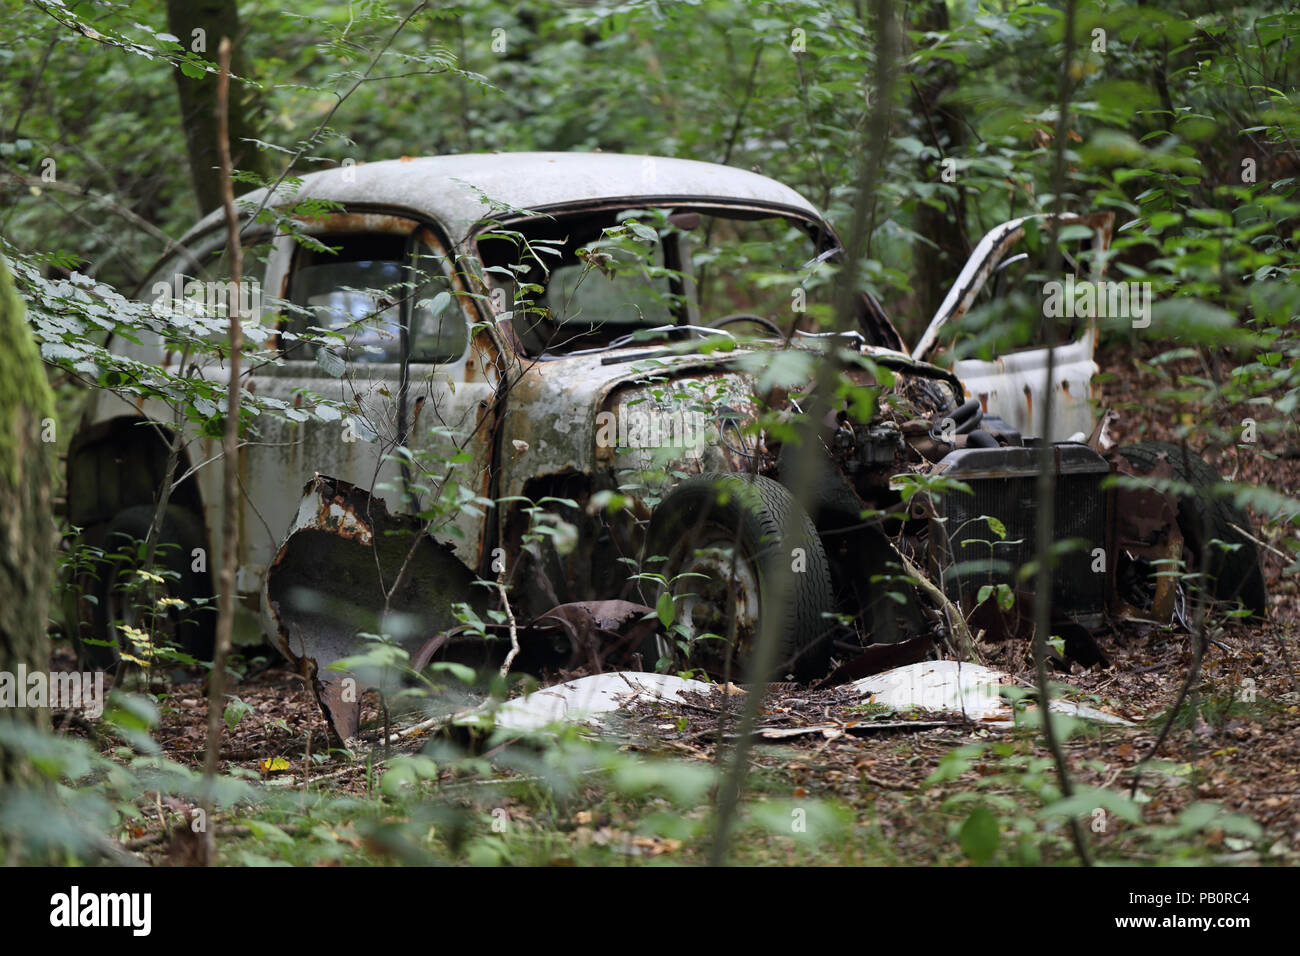 an-old-volvo-pv-544-made-from-the-1940s-